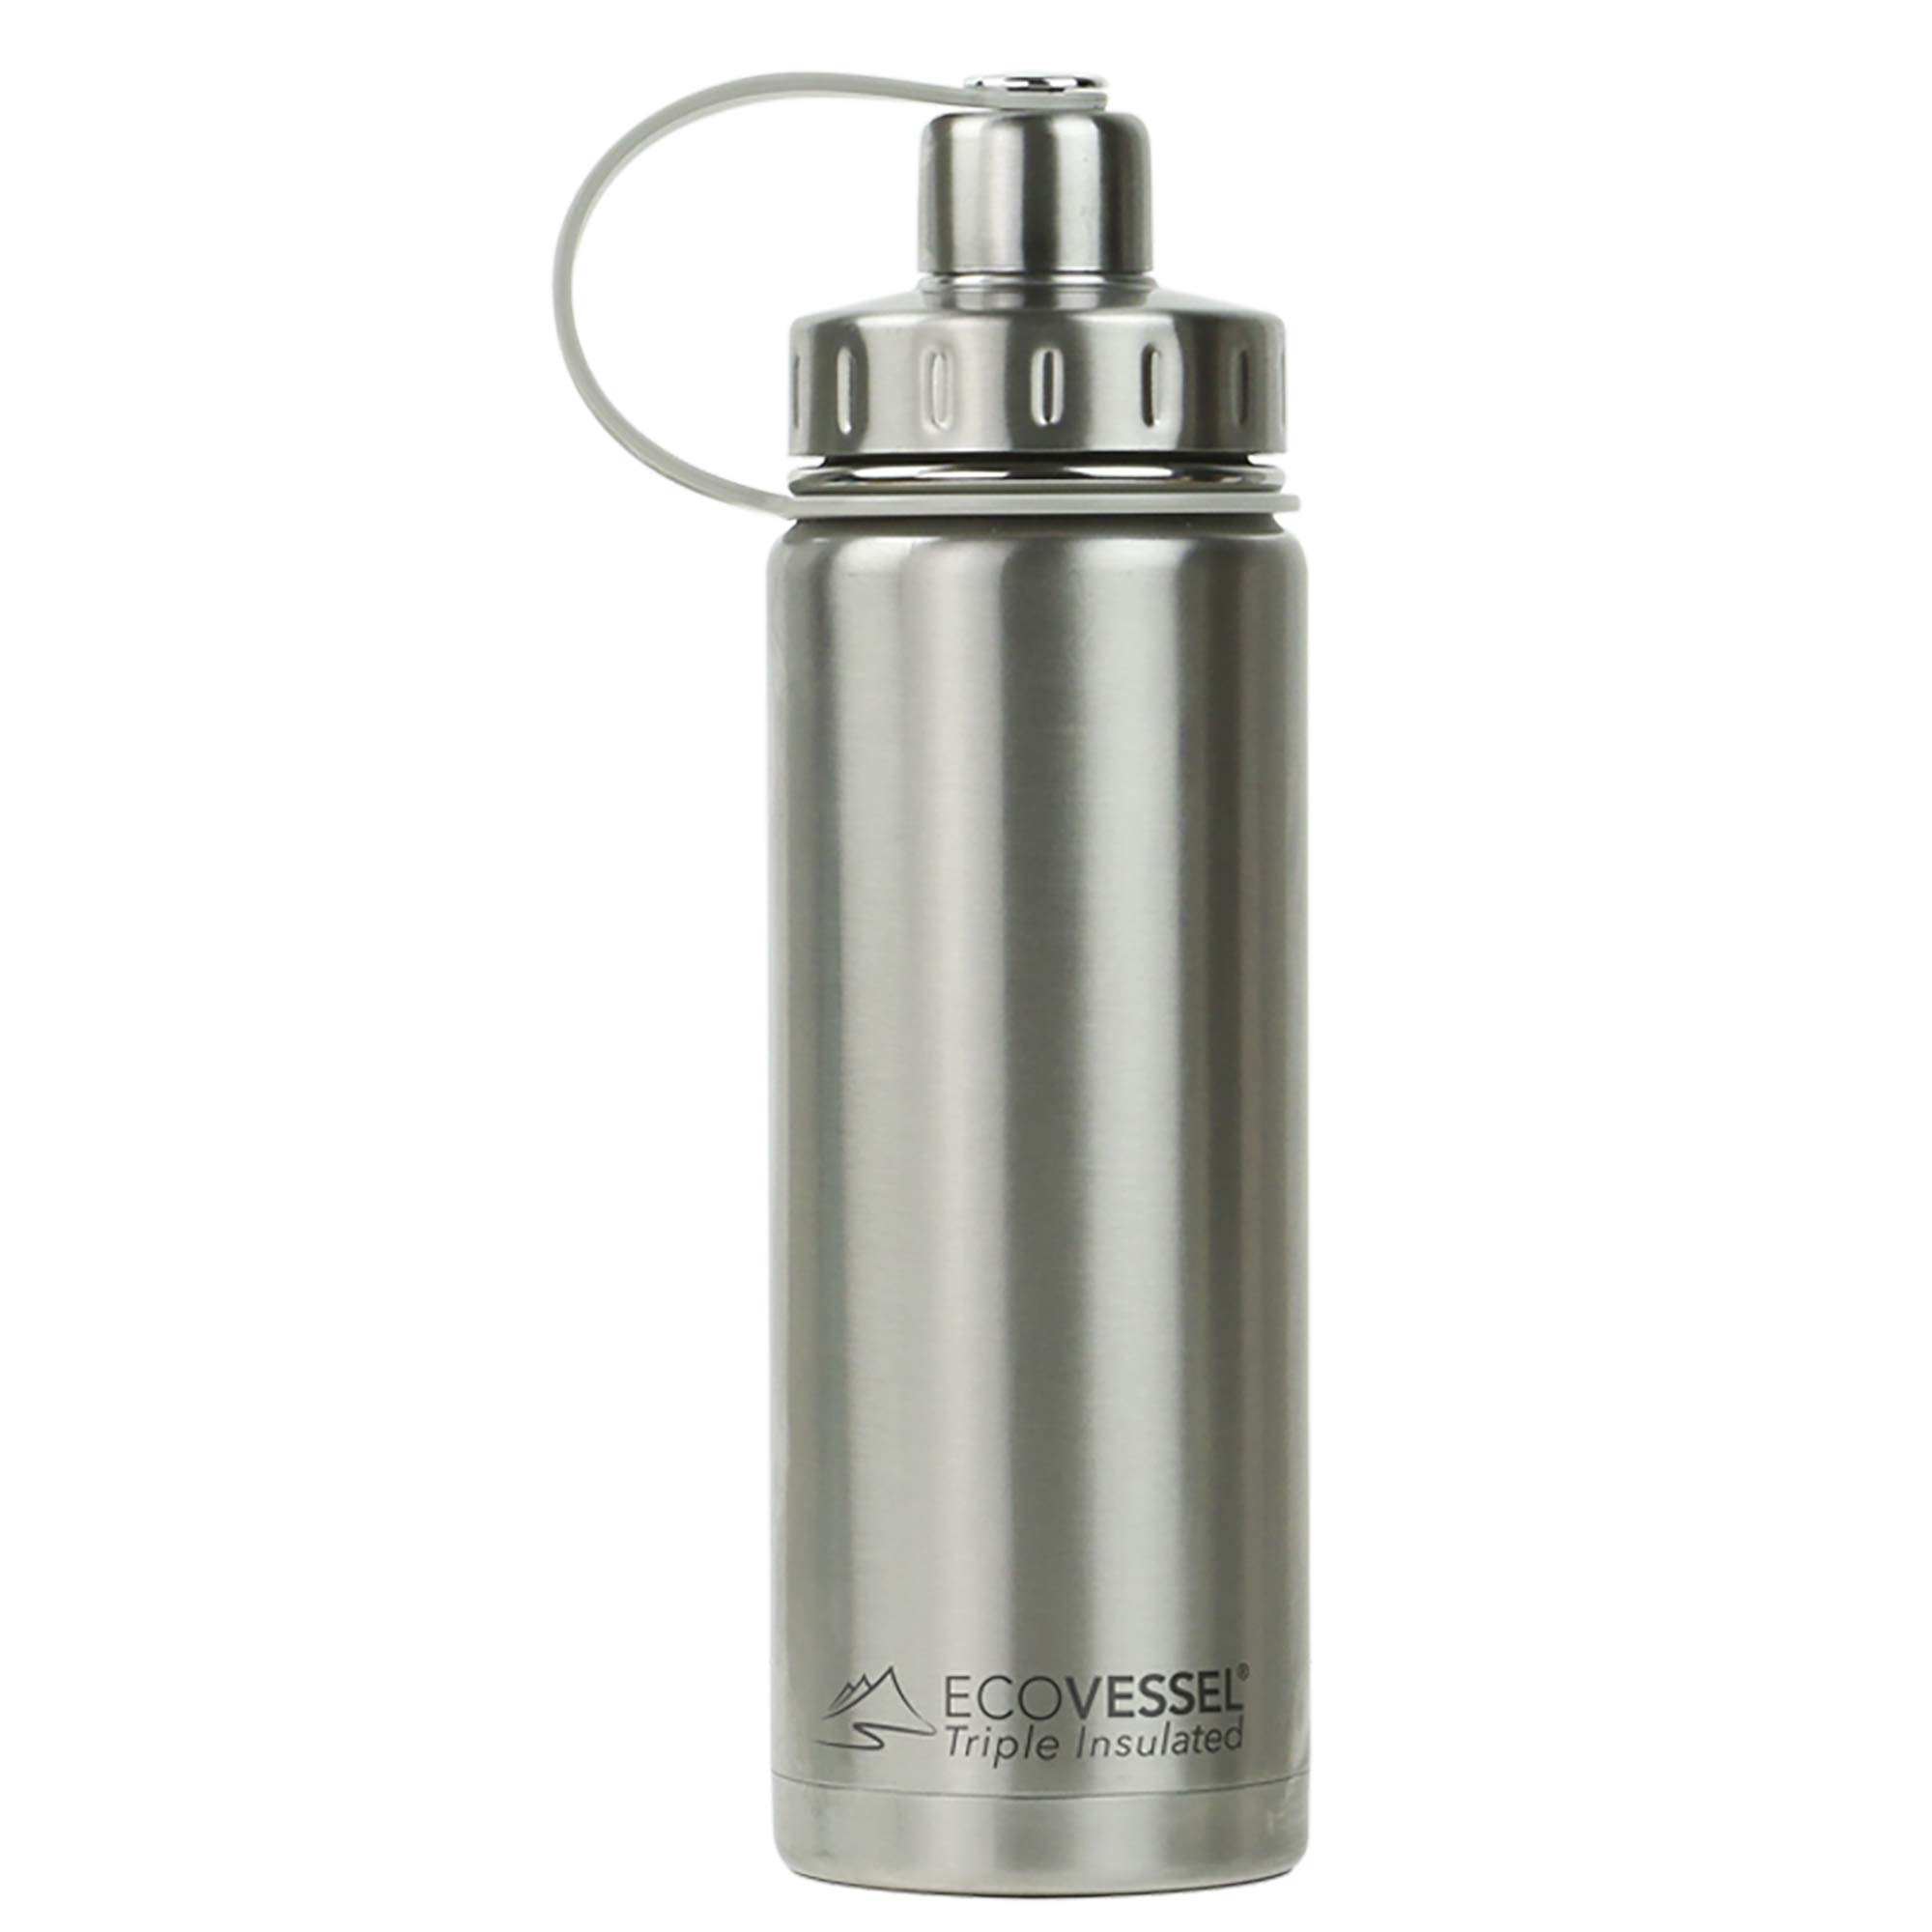 EcoVessel BOULDER TriMax Vacuum Insulated Stainless Steel Water Bottle with Versatile Stainless Steel Top and Tea, Fruit, Ice Strainer - 20 ounce - Silver Express